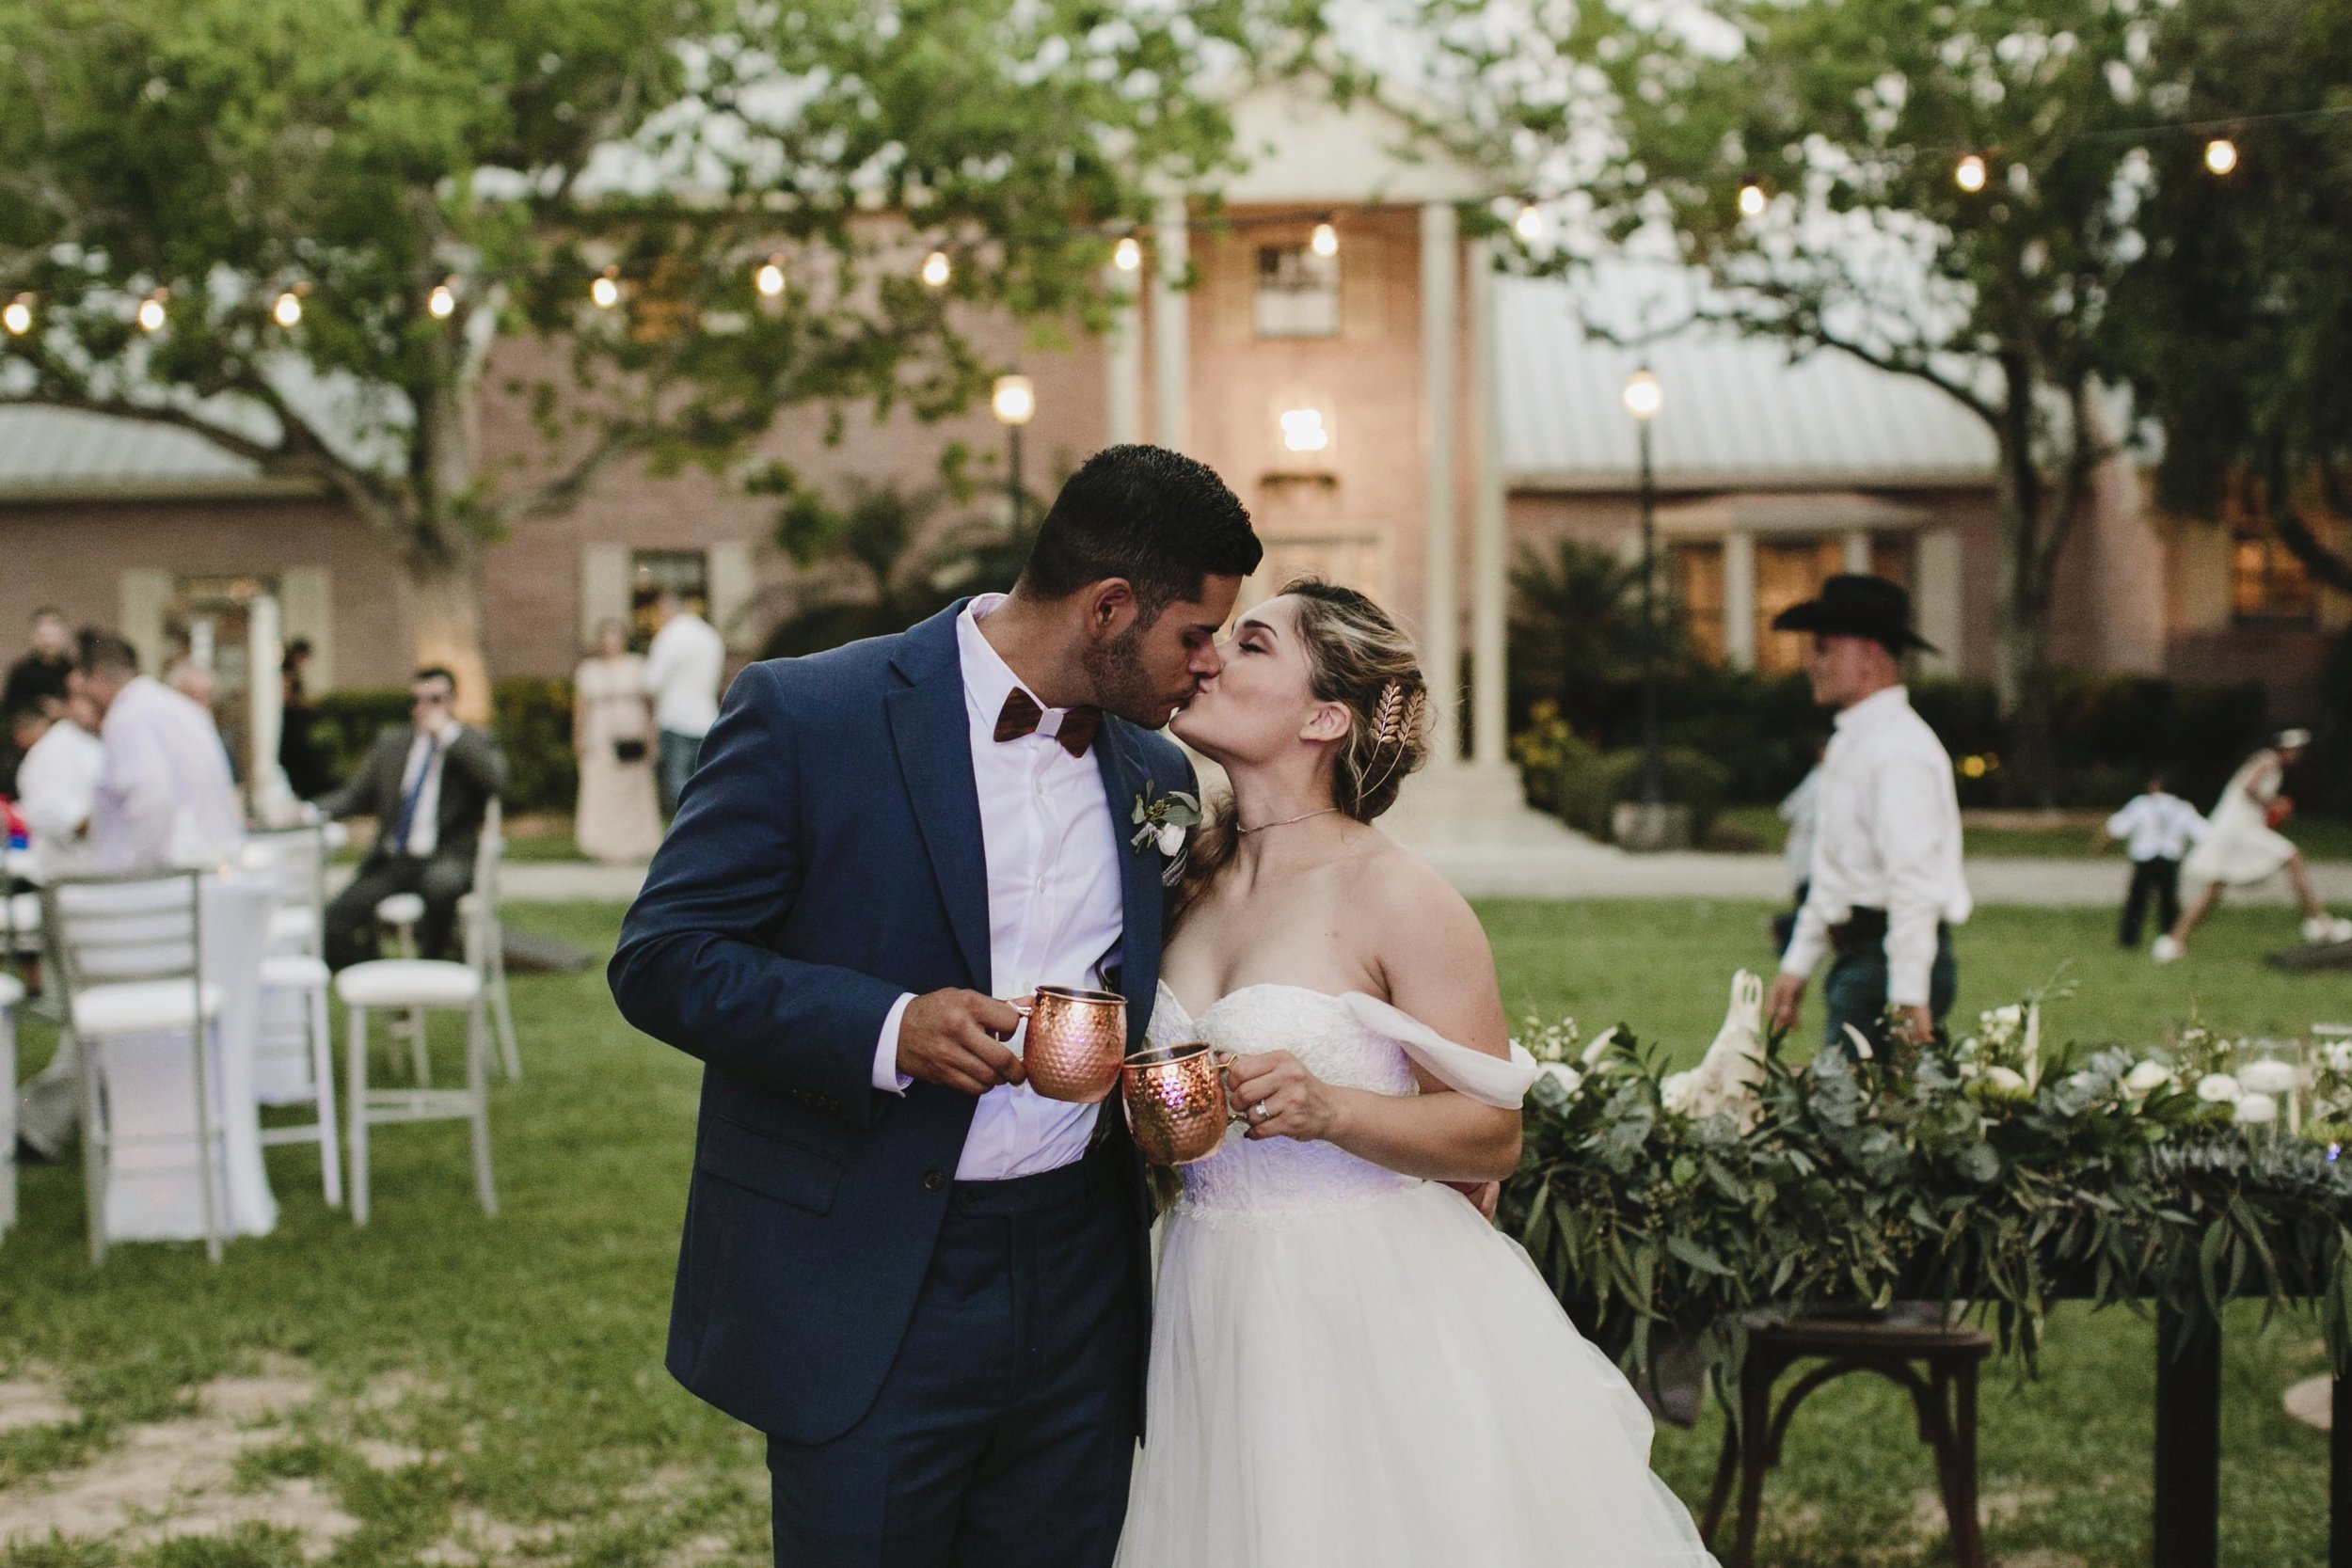 alfonso_flores_destination_wedding_photographer_texas.jpg